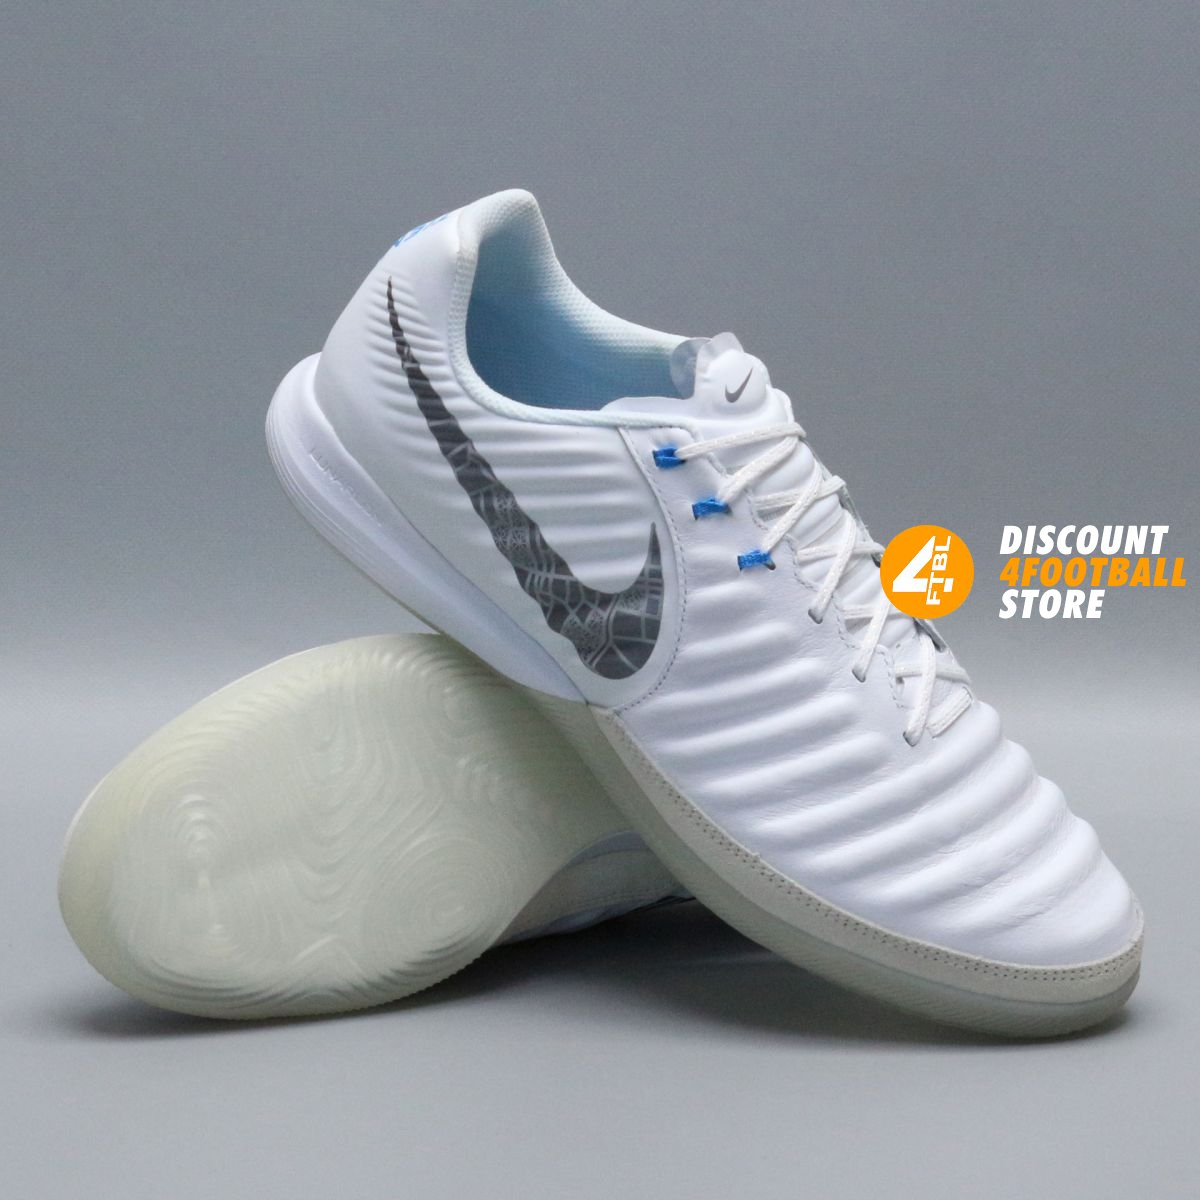 c5138a620b7876 Футзалки nike TIEMPO LUNAR LEGEND PRO | World Cup 2018 | AH7246-107 ...